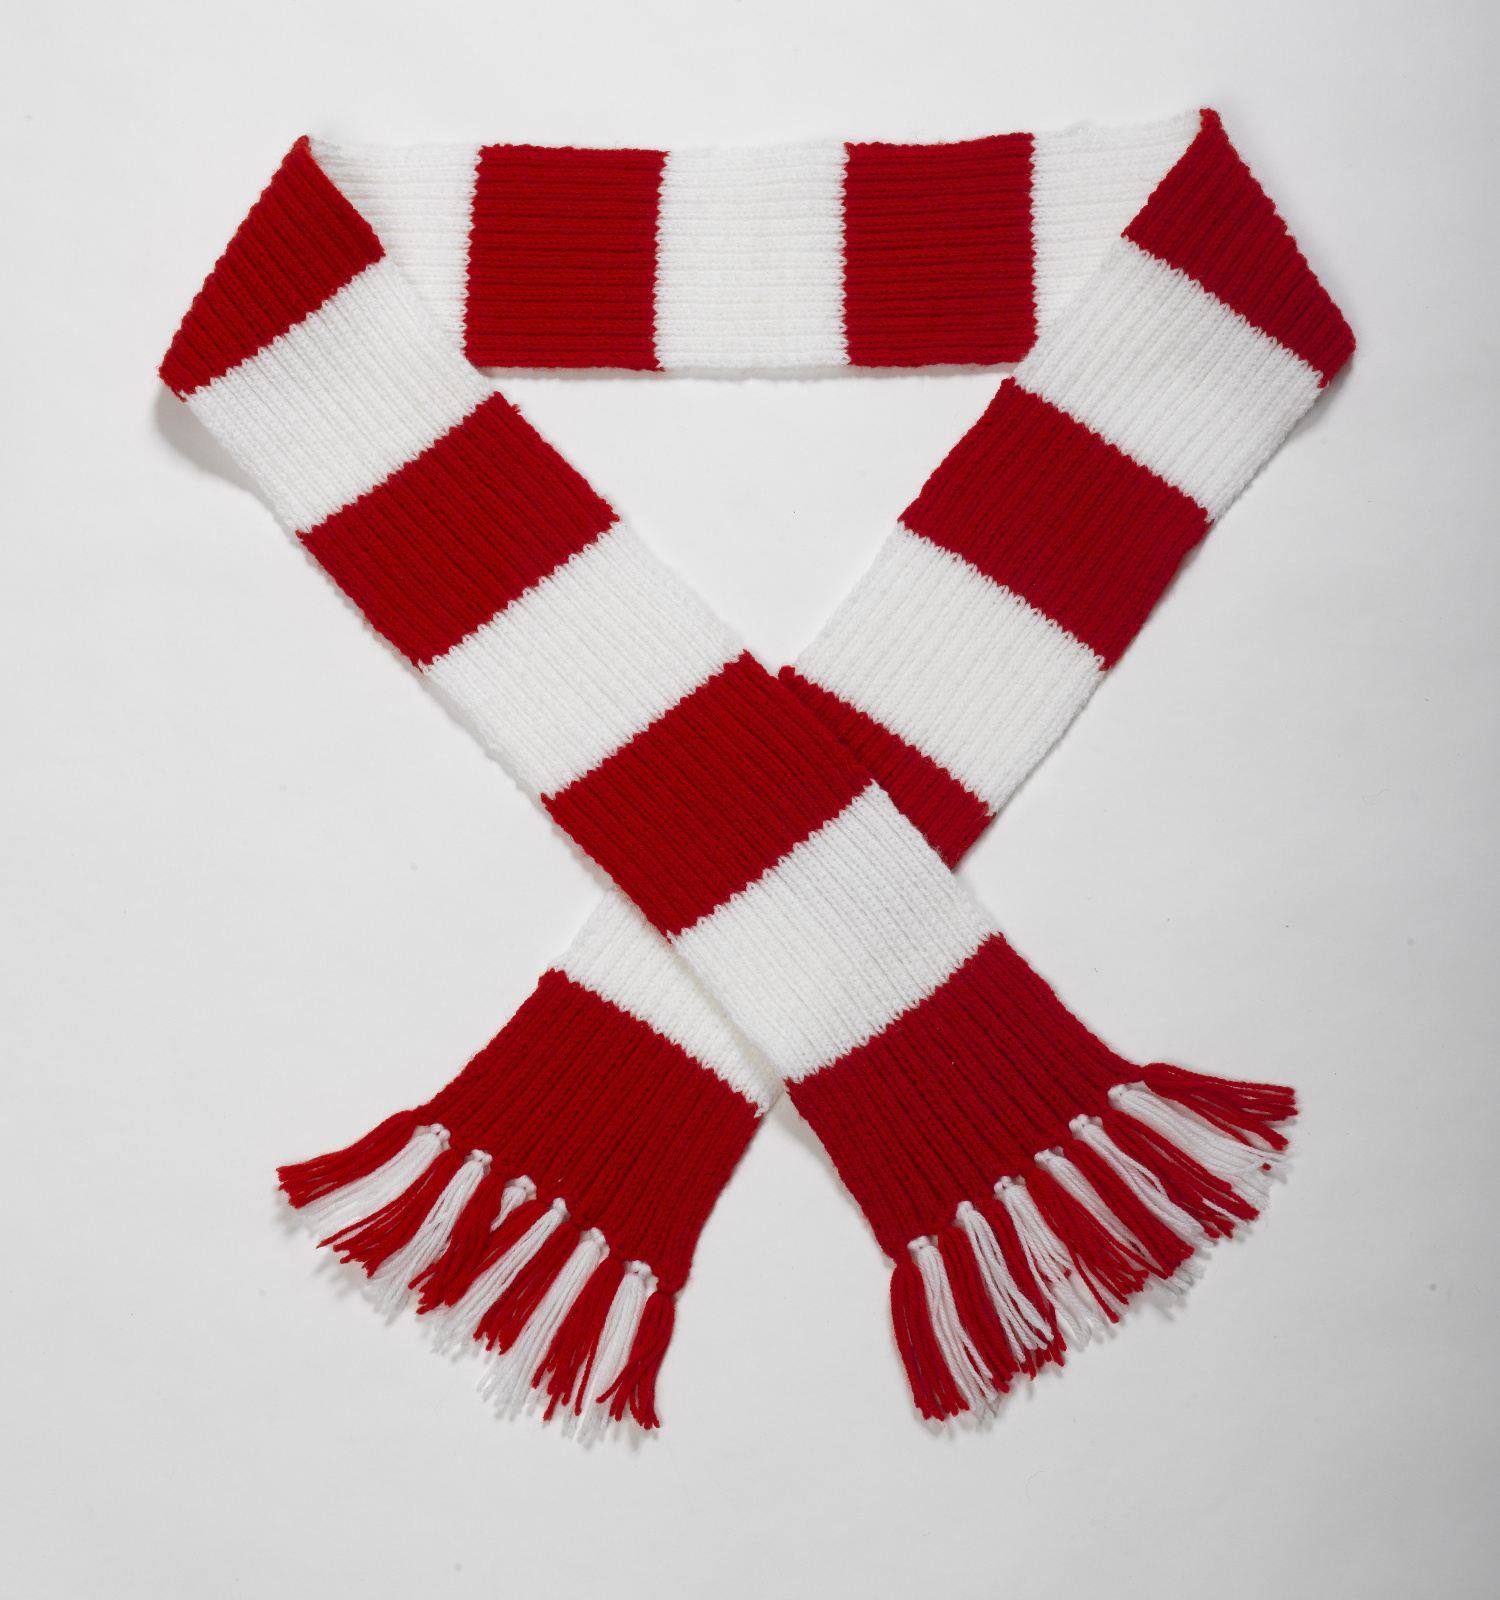 Knitting Pattern For Football Scarf : Striped Football Scarf Double Knitting Pattern & Wool ...